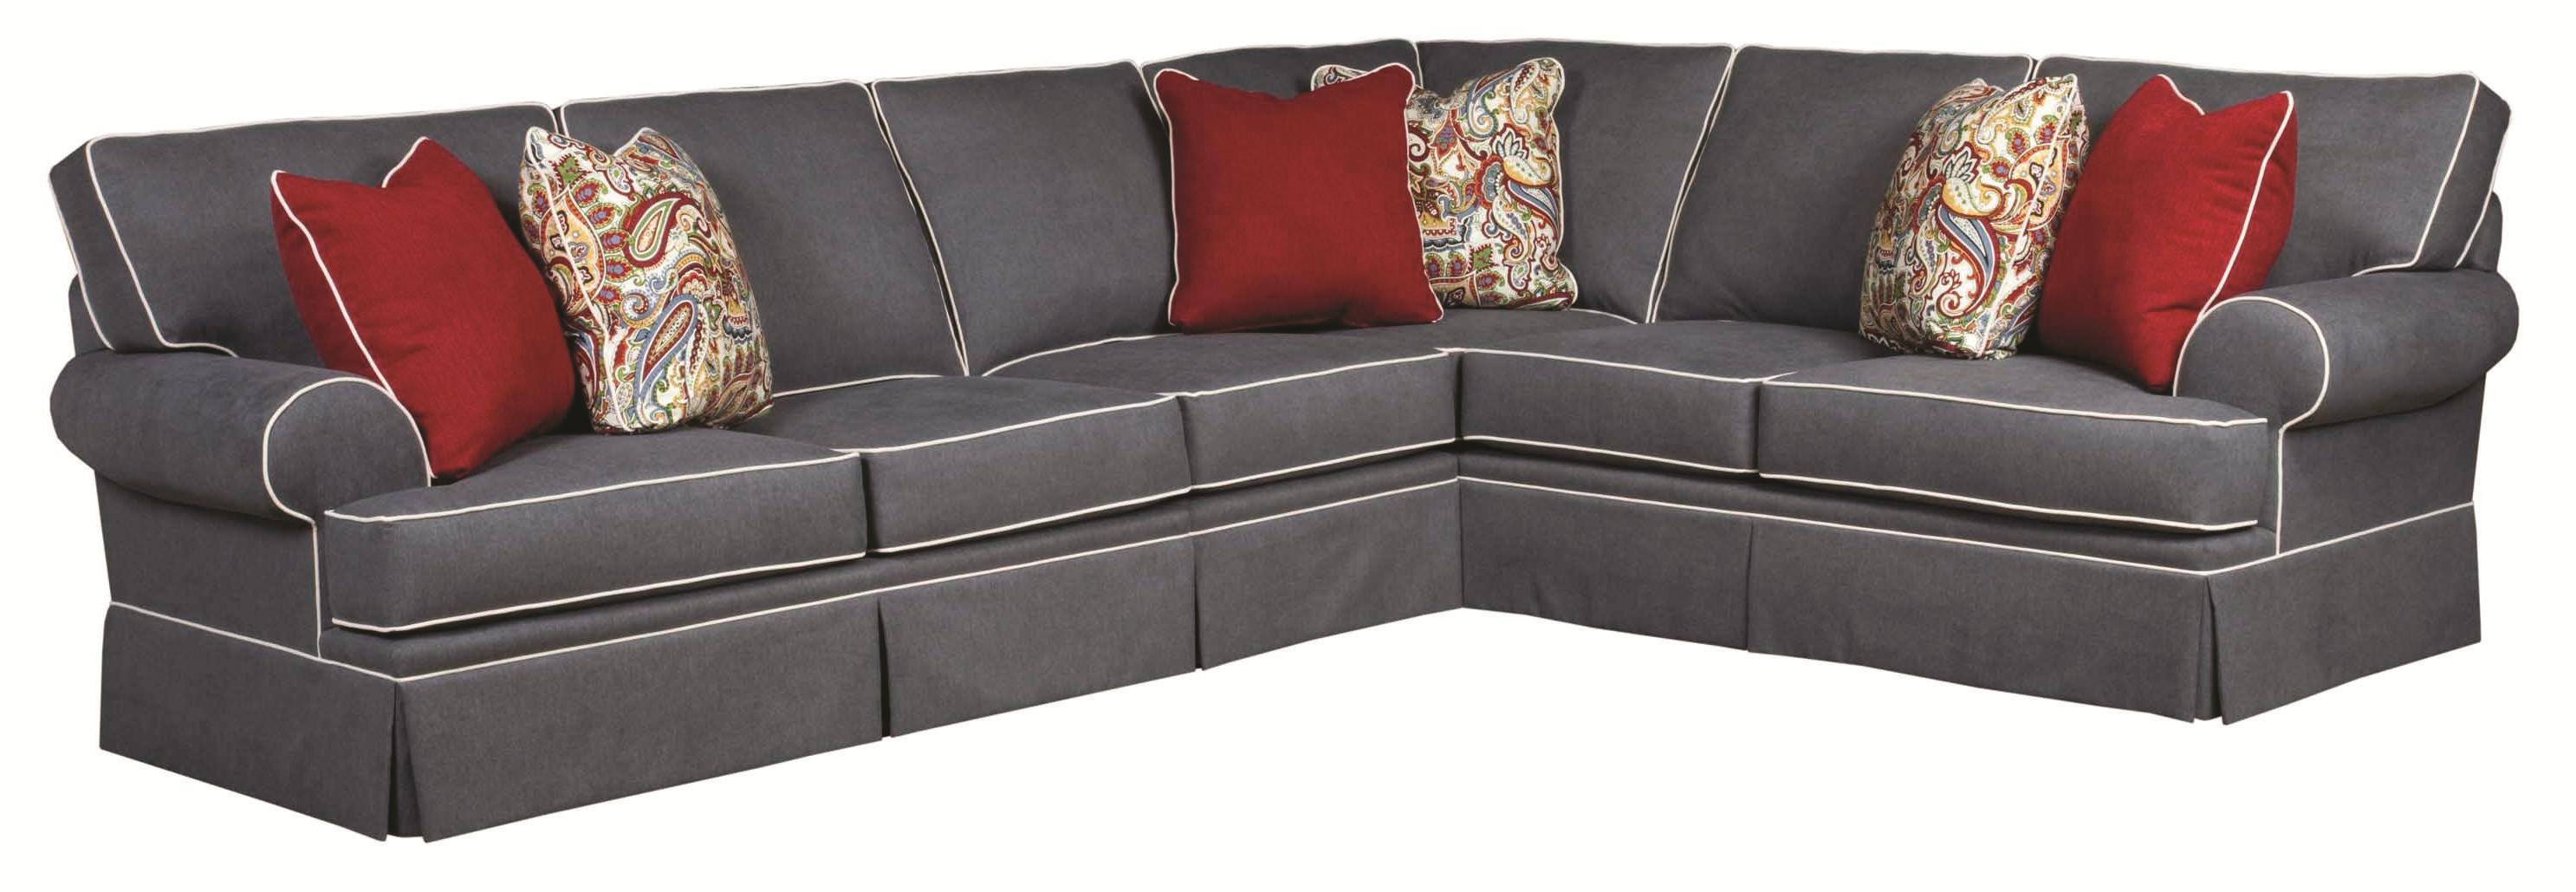 Broyhill Furniture Emily Traditional 3 Piece Sectional Sofa With Throughout Emily Sofas (View 2 of 20)